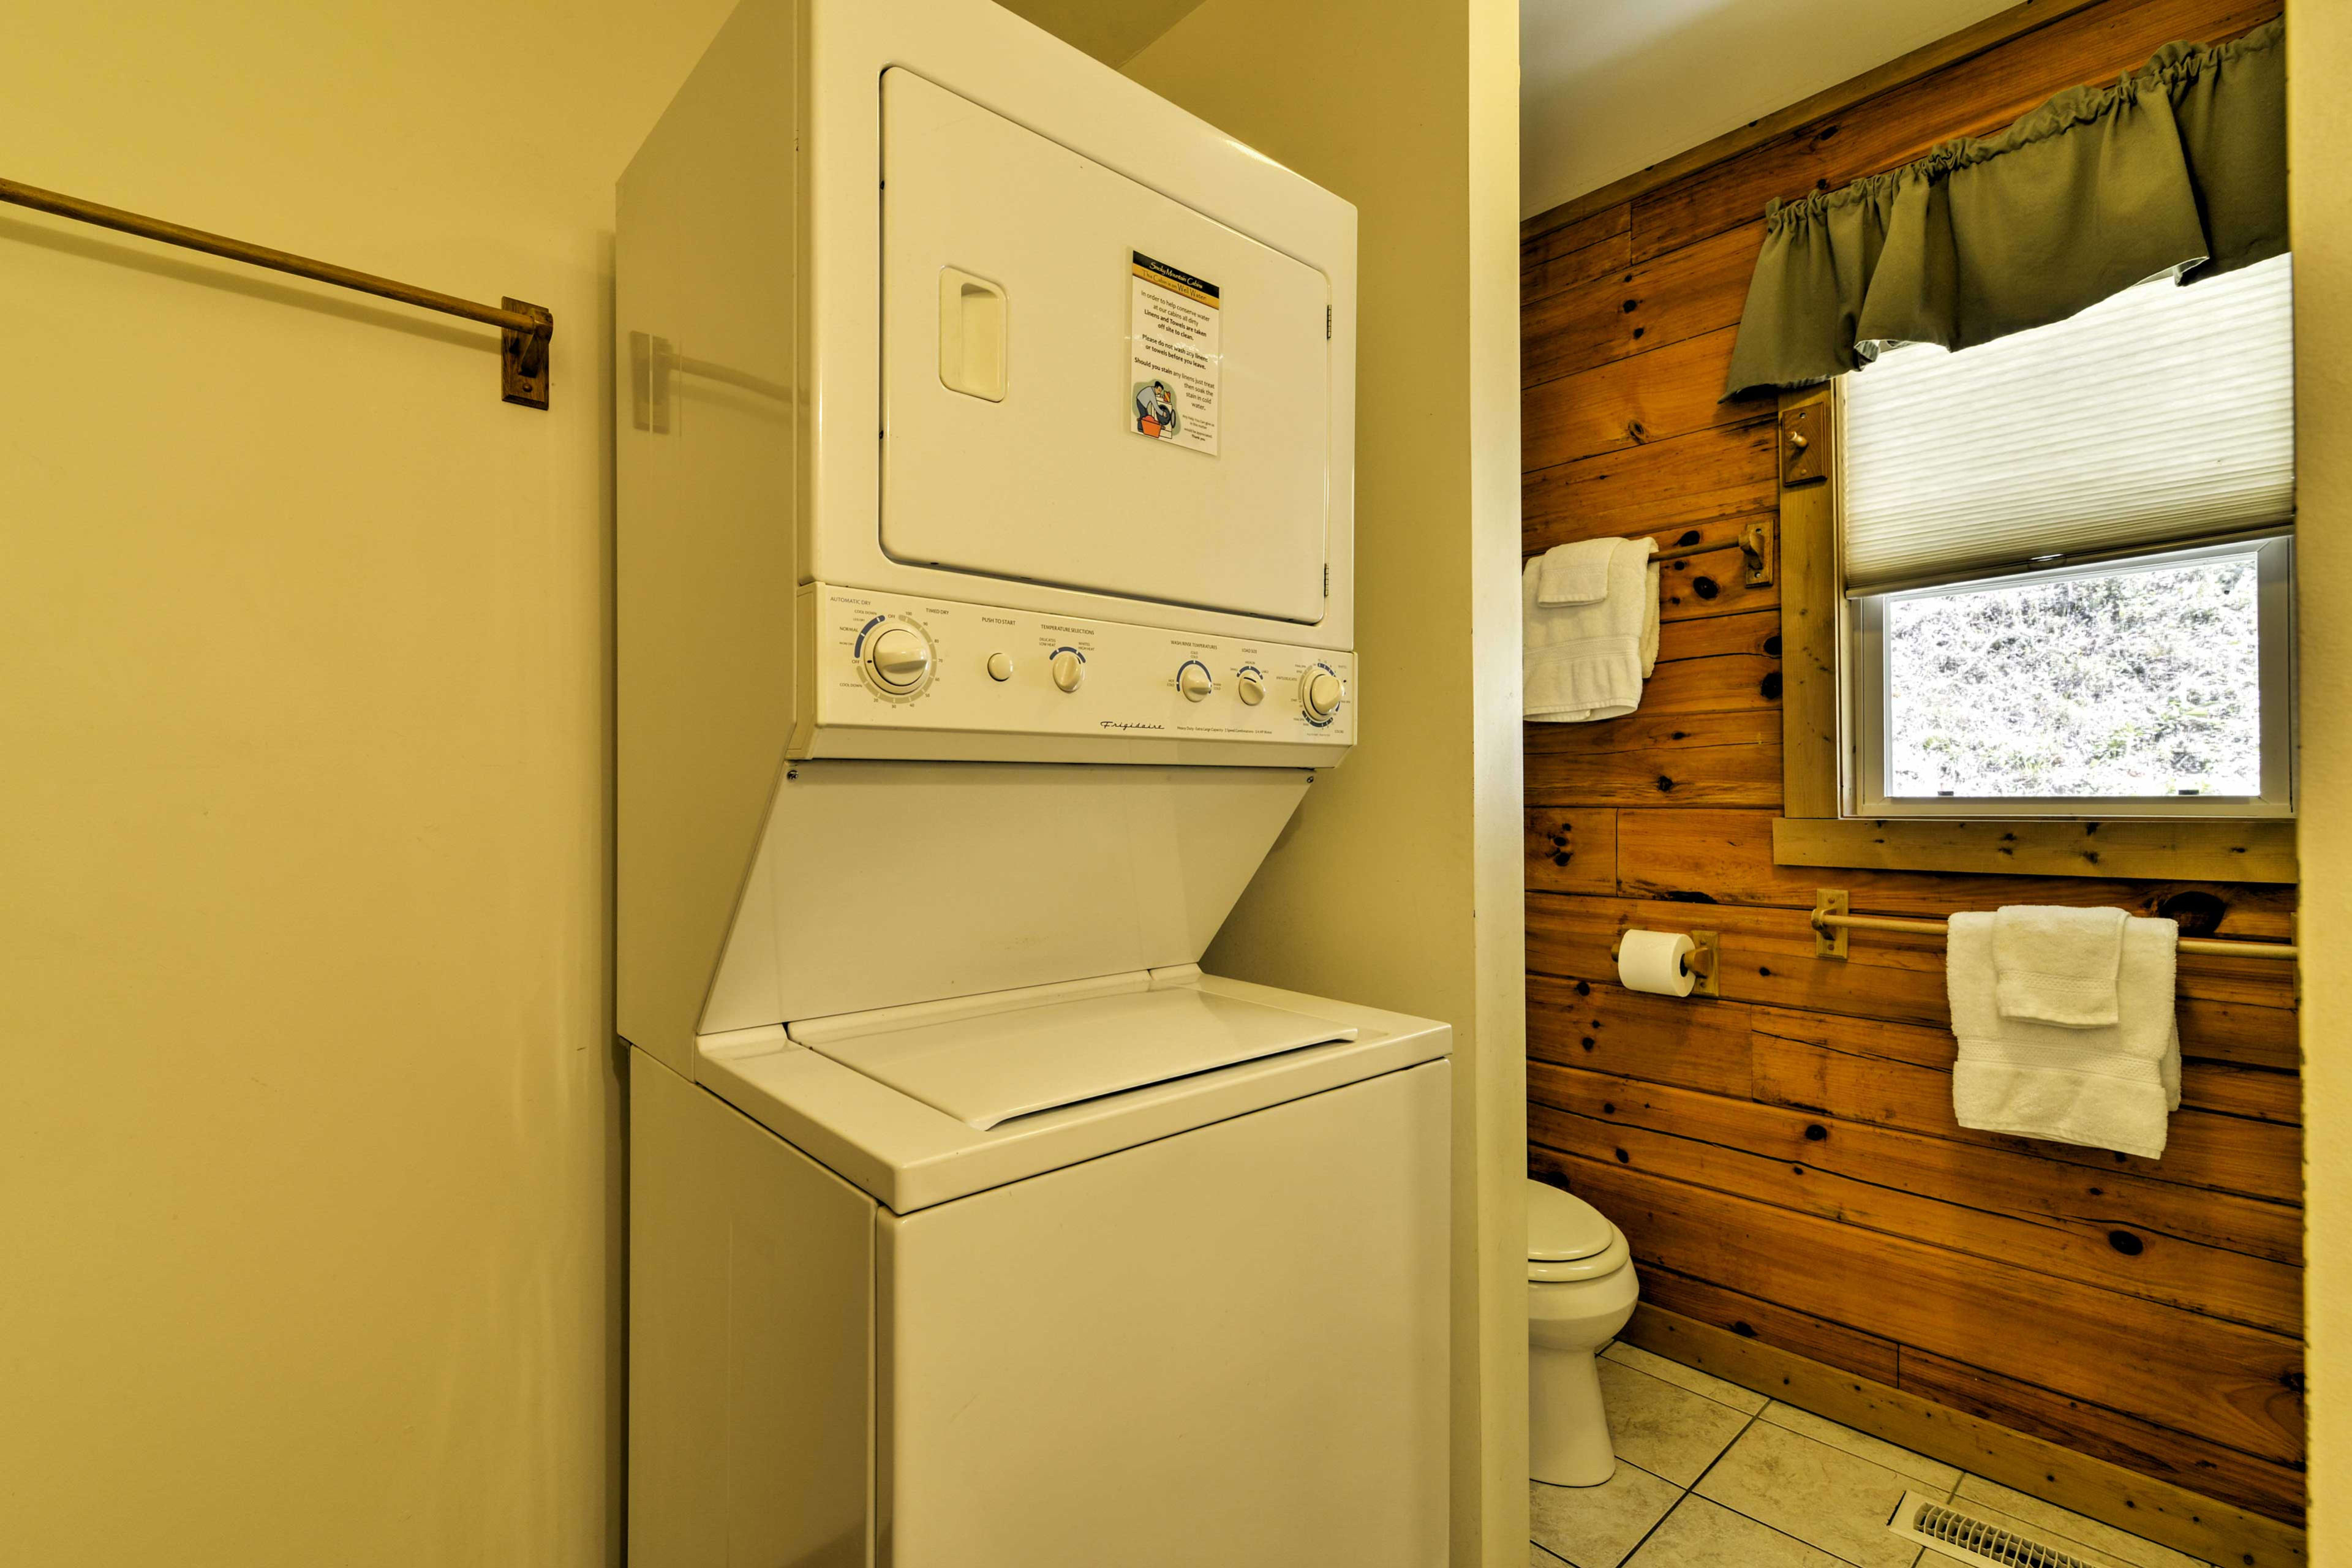 The bathroom includes the laundry machines.